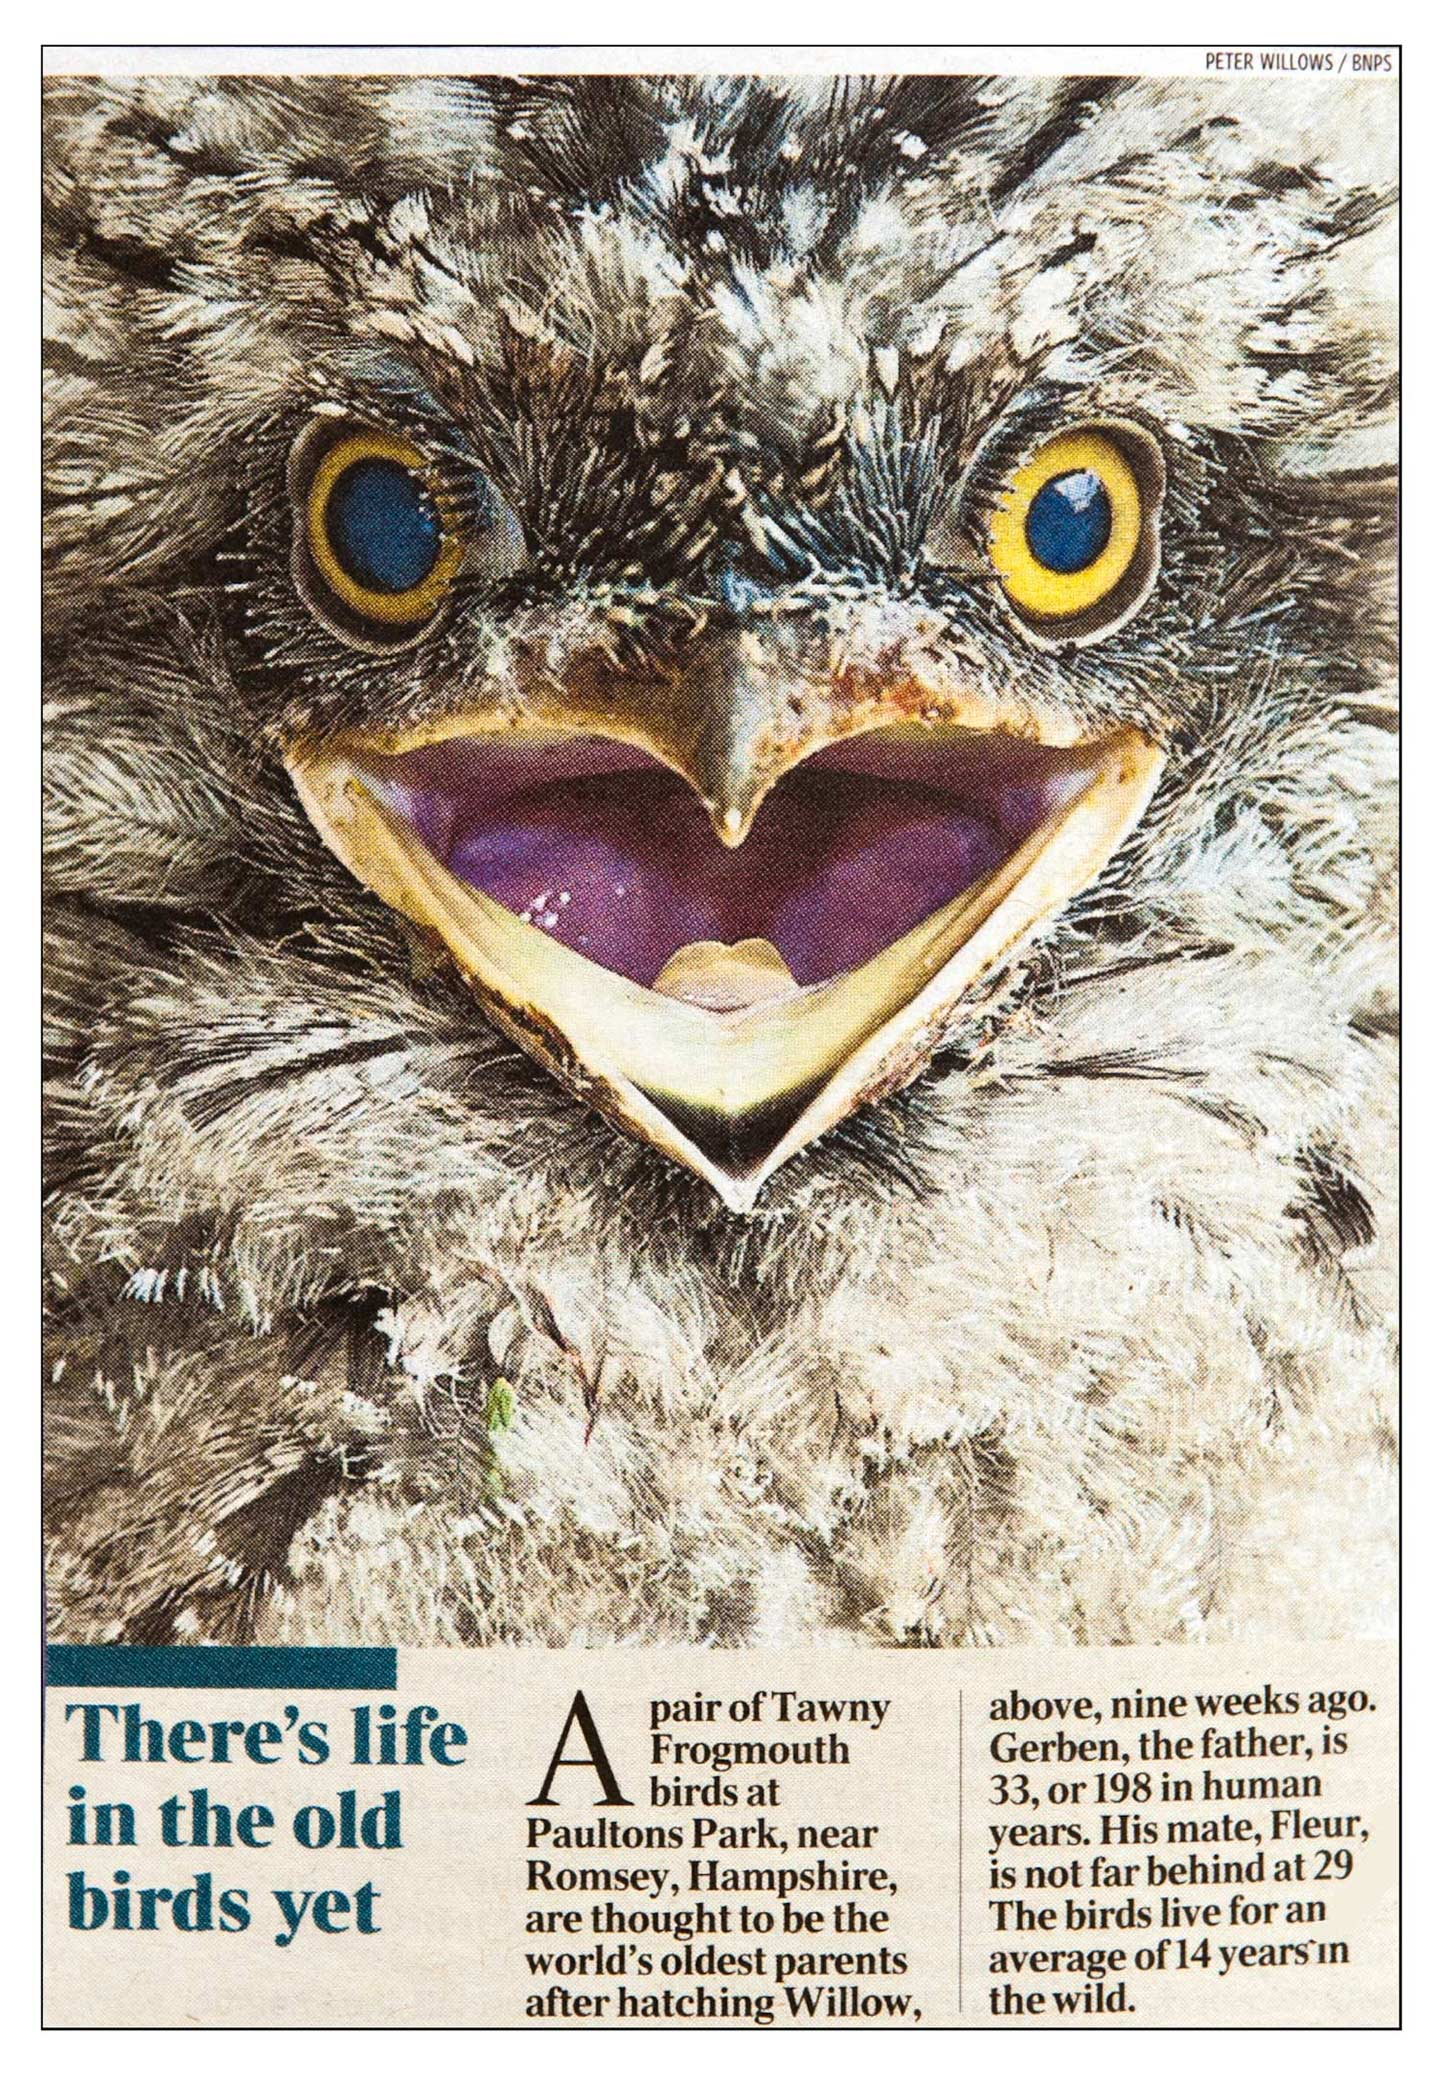 Peter Willows Photographer dorset weddings press & pr Dorset-sunday-times oldest-bird-times-01